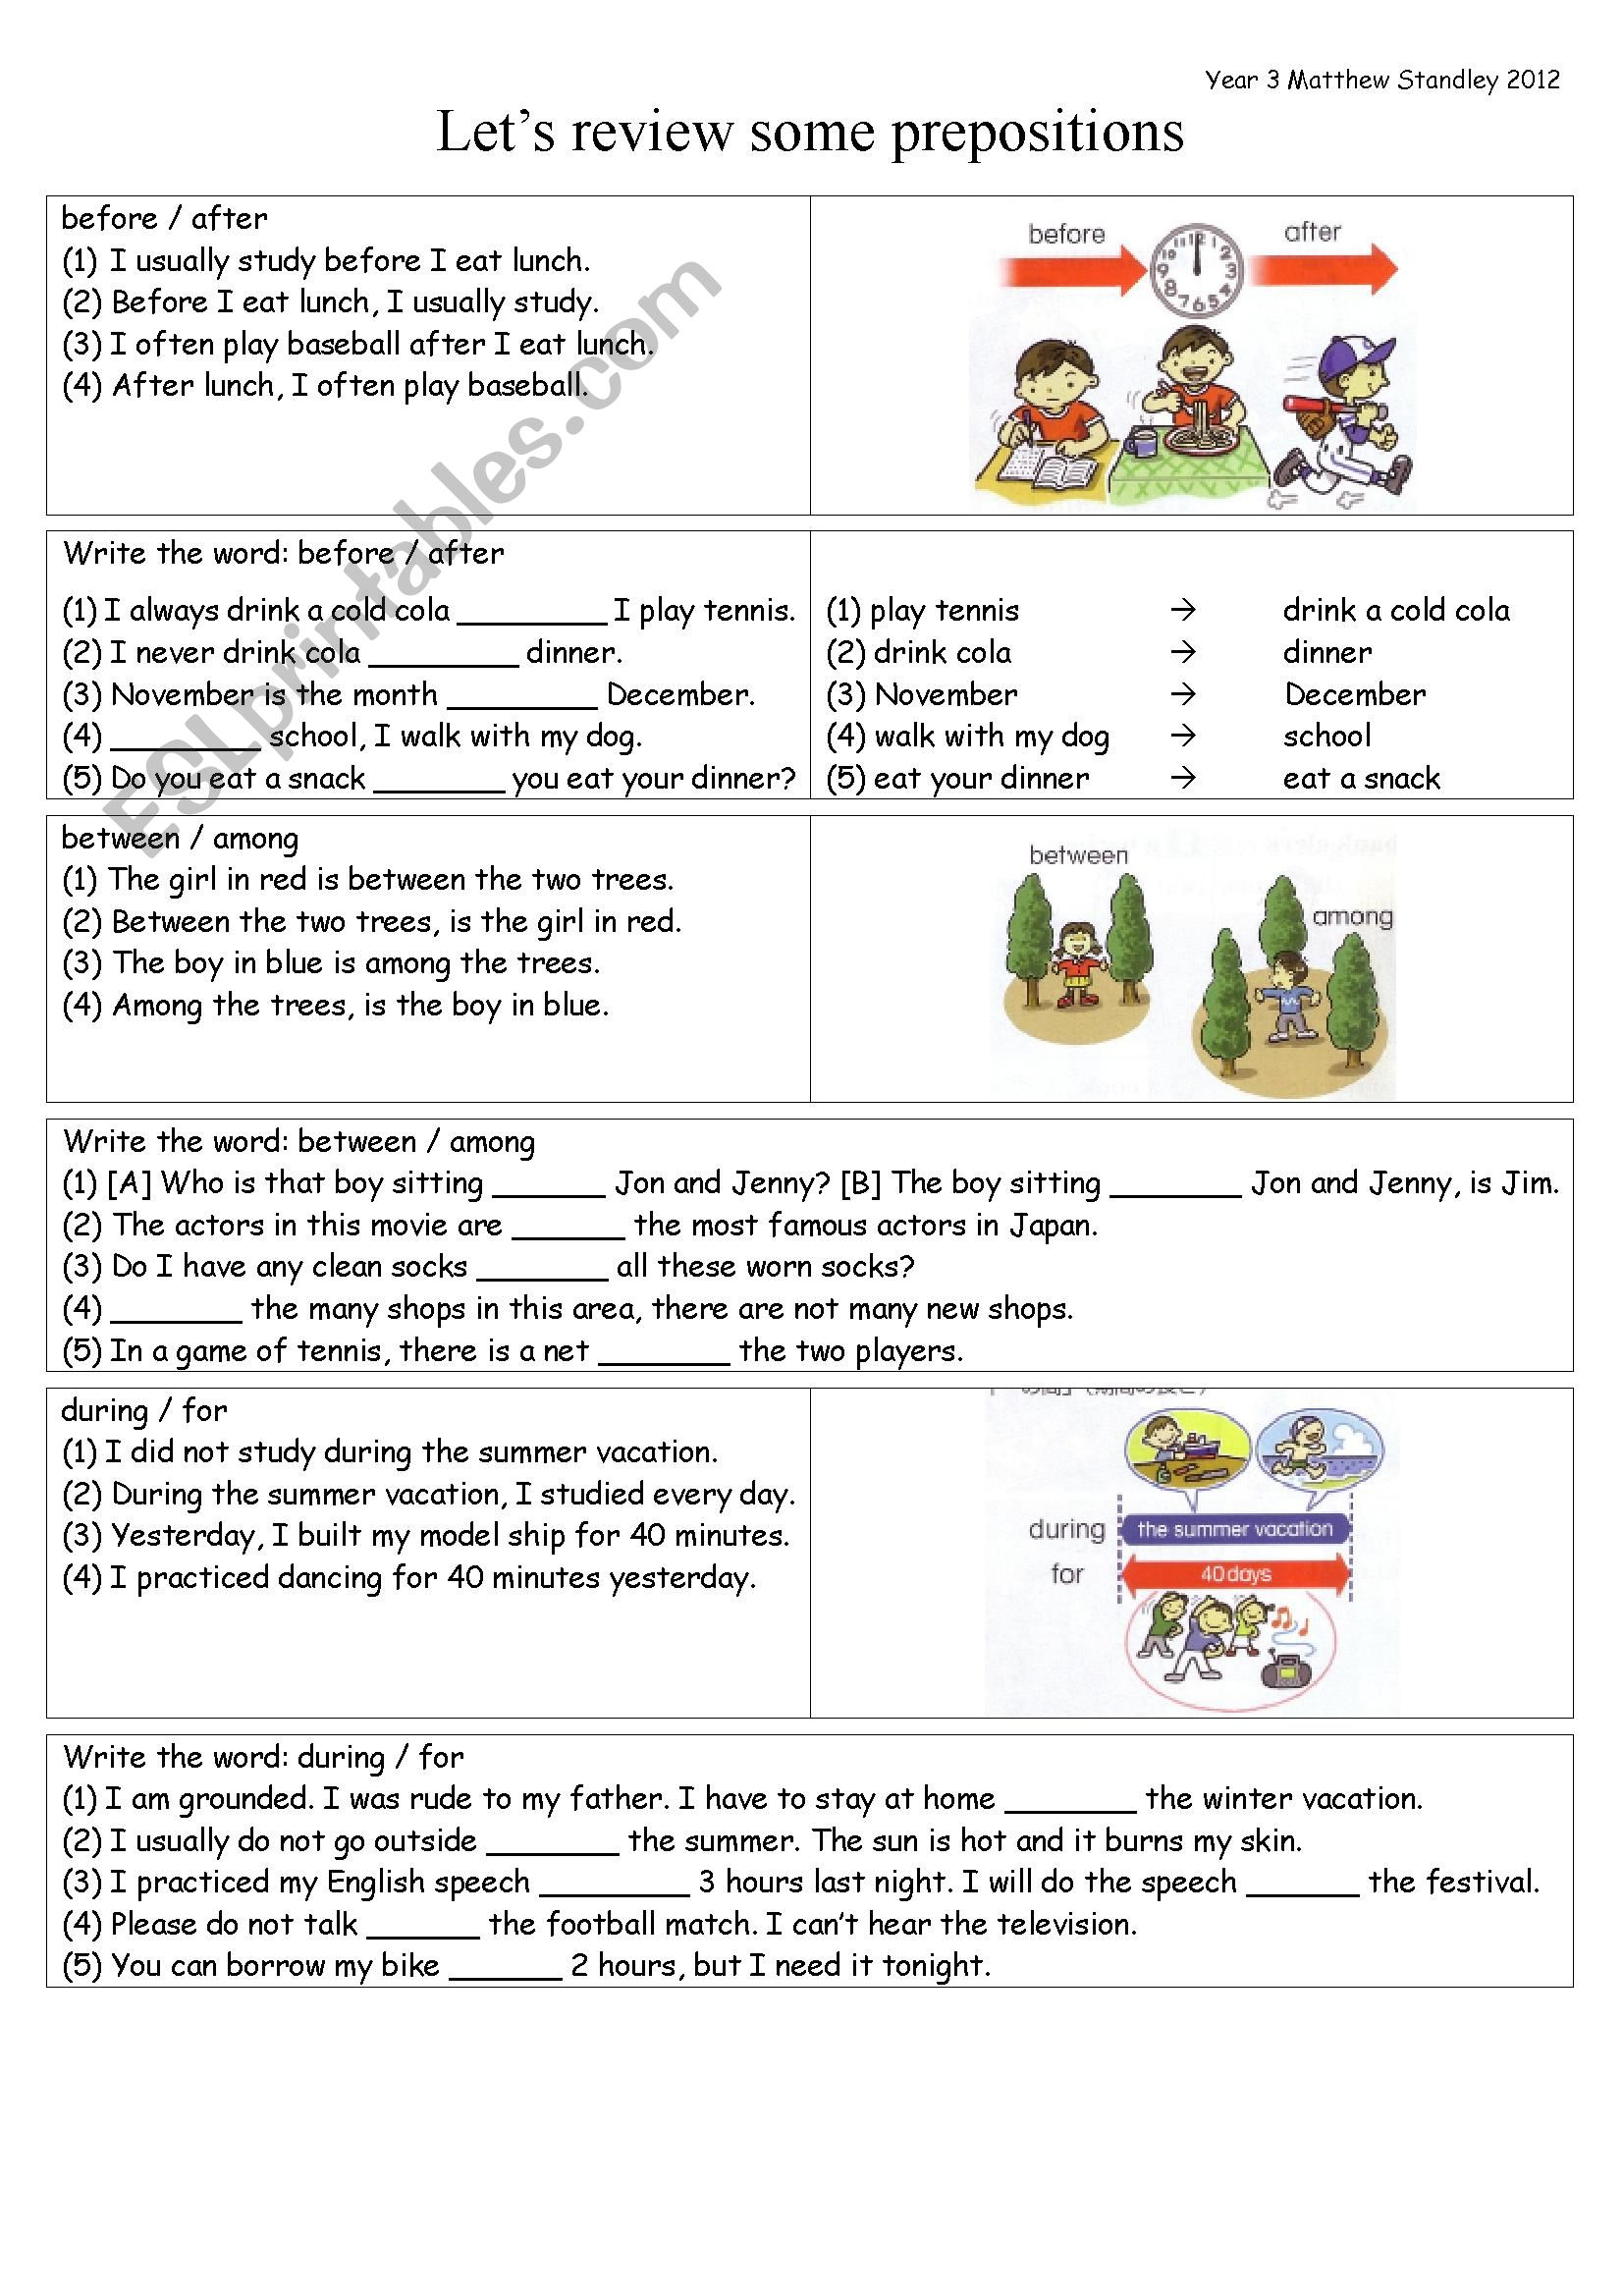 Prepositions Review Before After Between Among